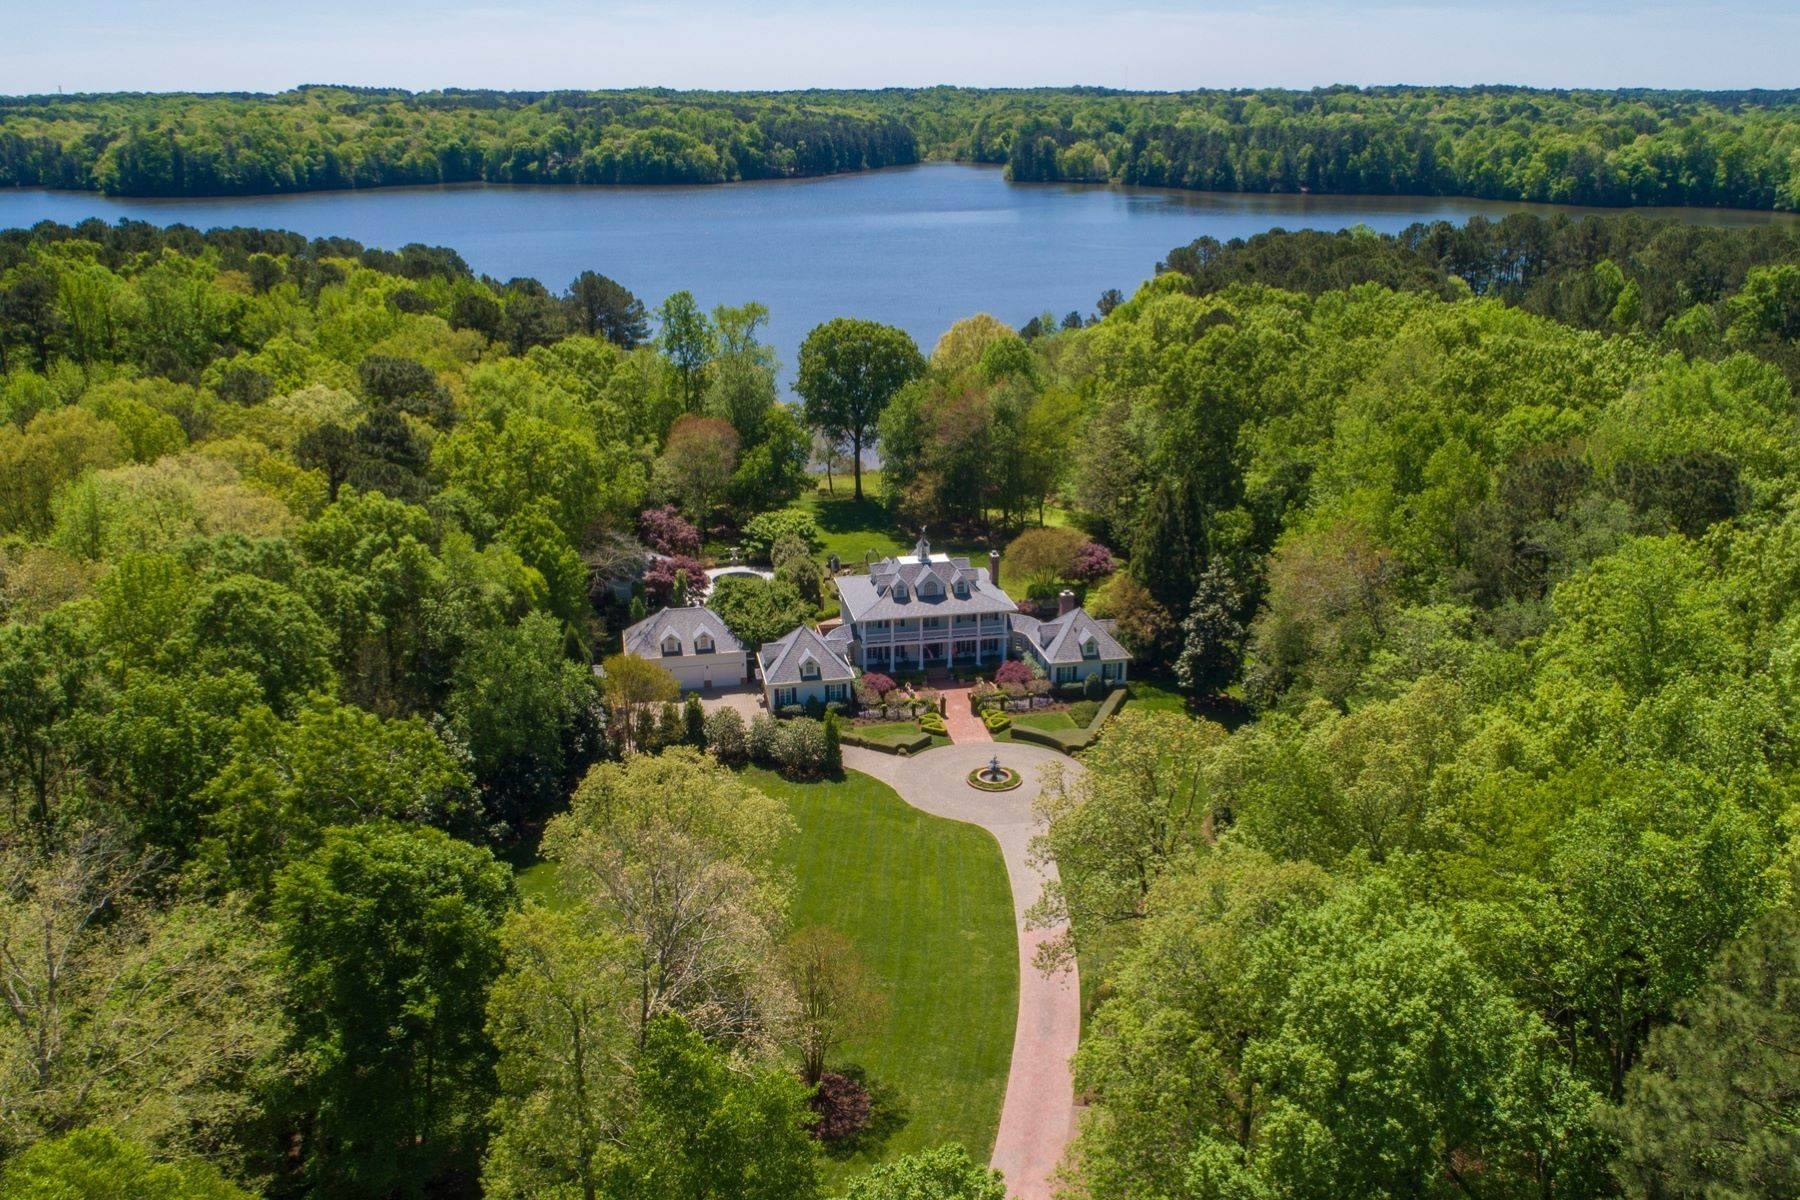 Single Family Homes for Sale at Lakefront Country Estate on Six Acres Minutes From Downtown Raleigh 5320 Burning Oak Court Raleigh, North Carolina 27606 United States